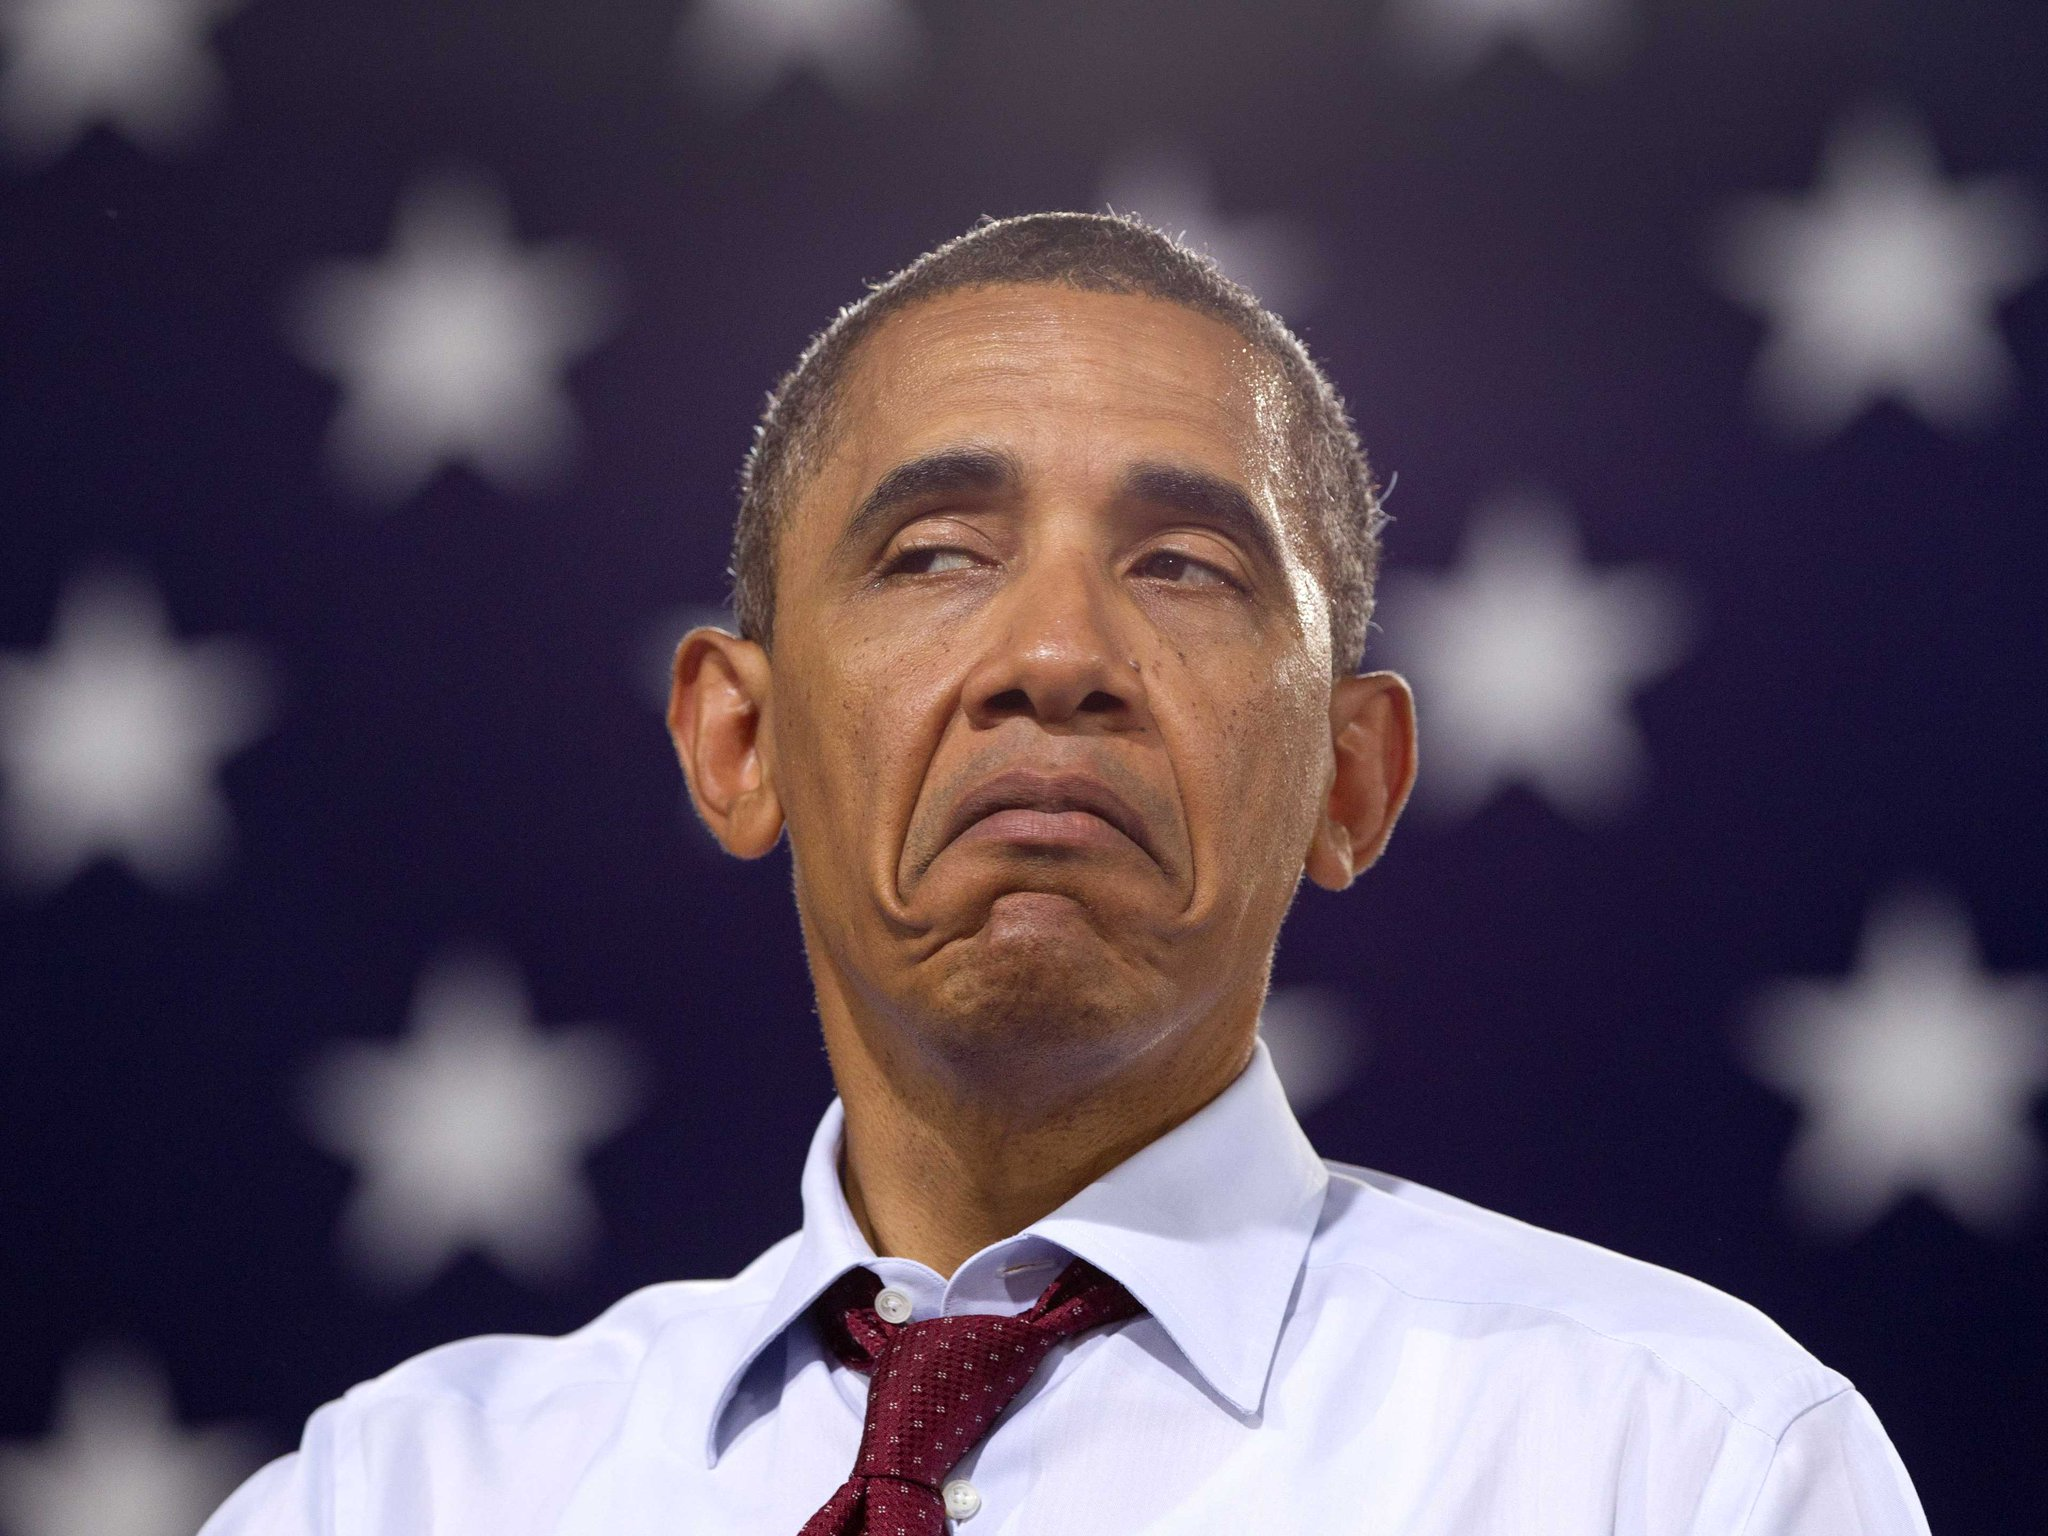 We called that the candidates would want to distance themselves from Obama: http://t.co/pC9e6NQu90 http://t.co/Ri9Jynm9dB